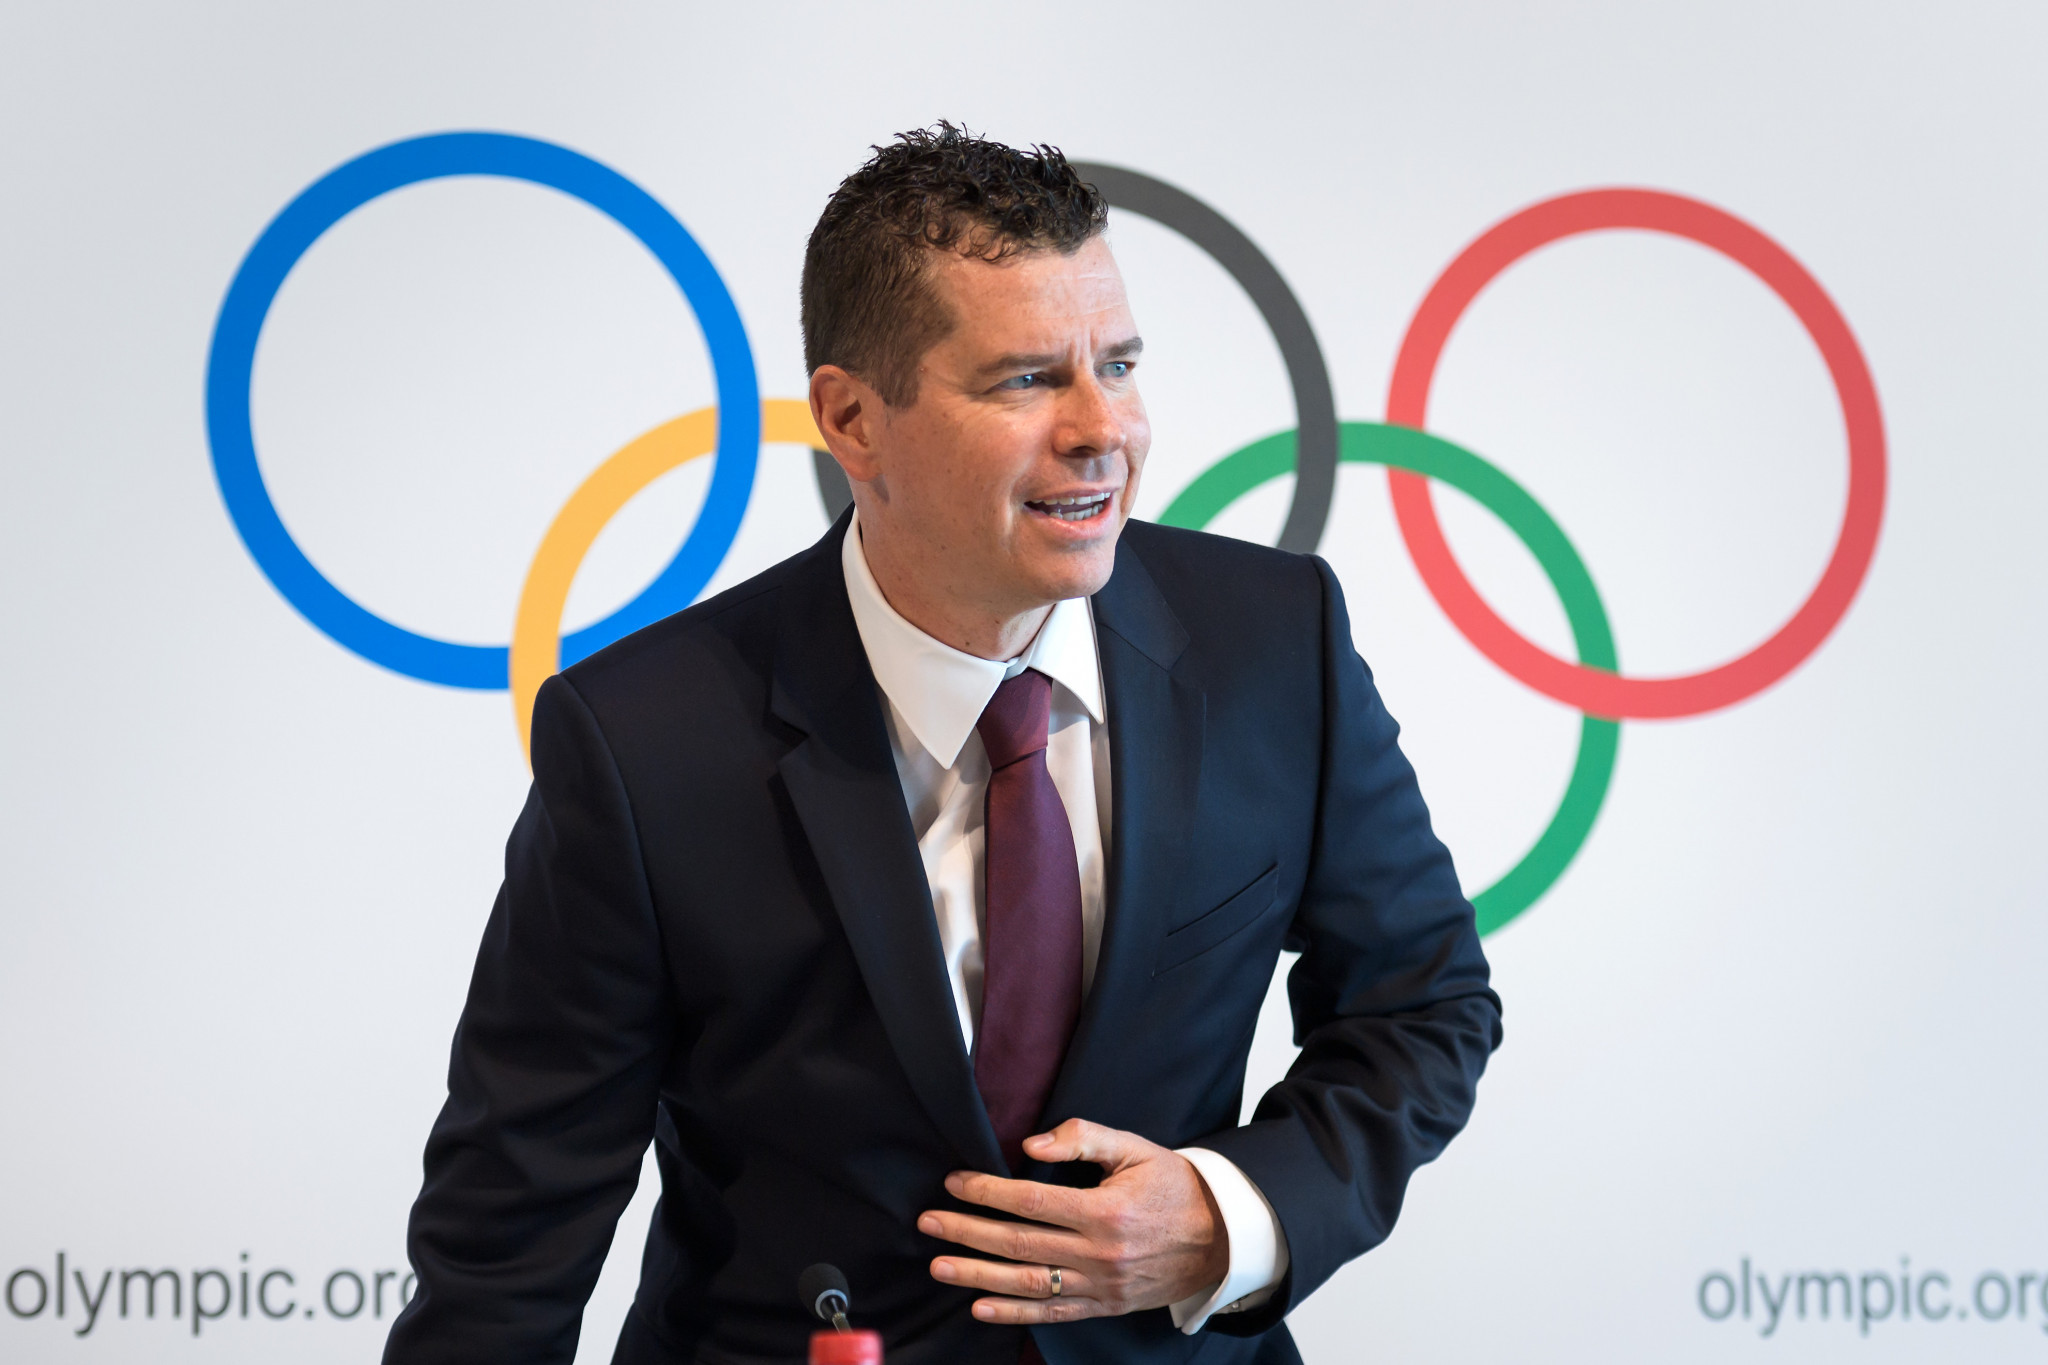 IOC sports director Kit McConnell claims he is pleased with skateboarding's preparations for its Olympic debut at Tokyo 2020, despite the opposition from many within the sport's community ©Getty Images